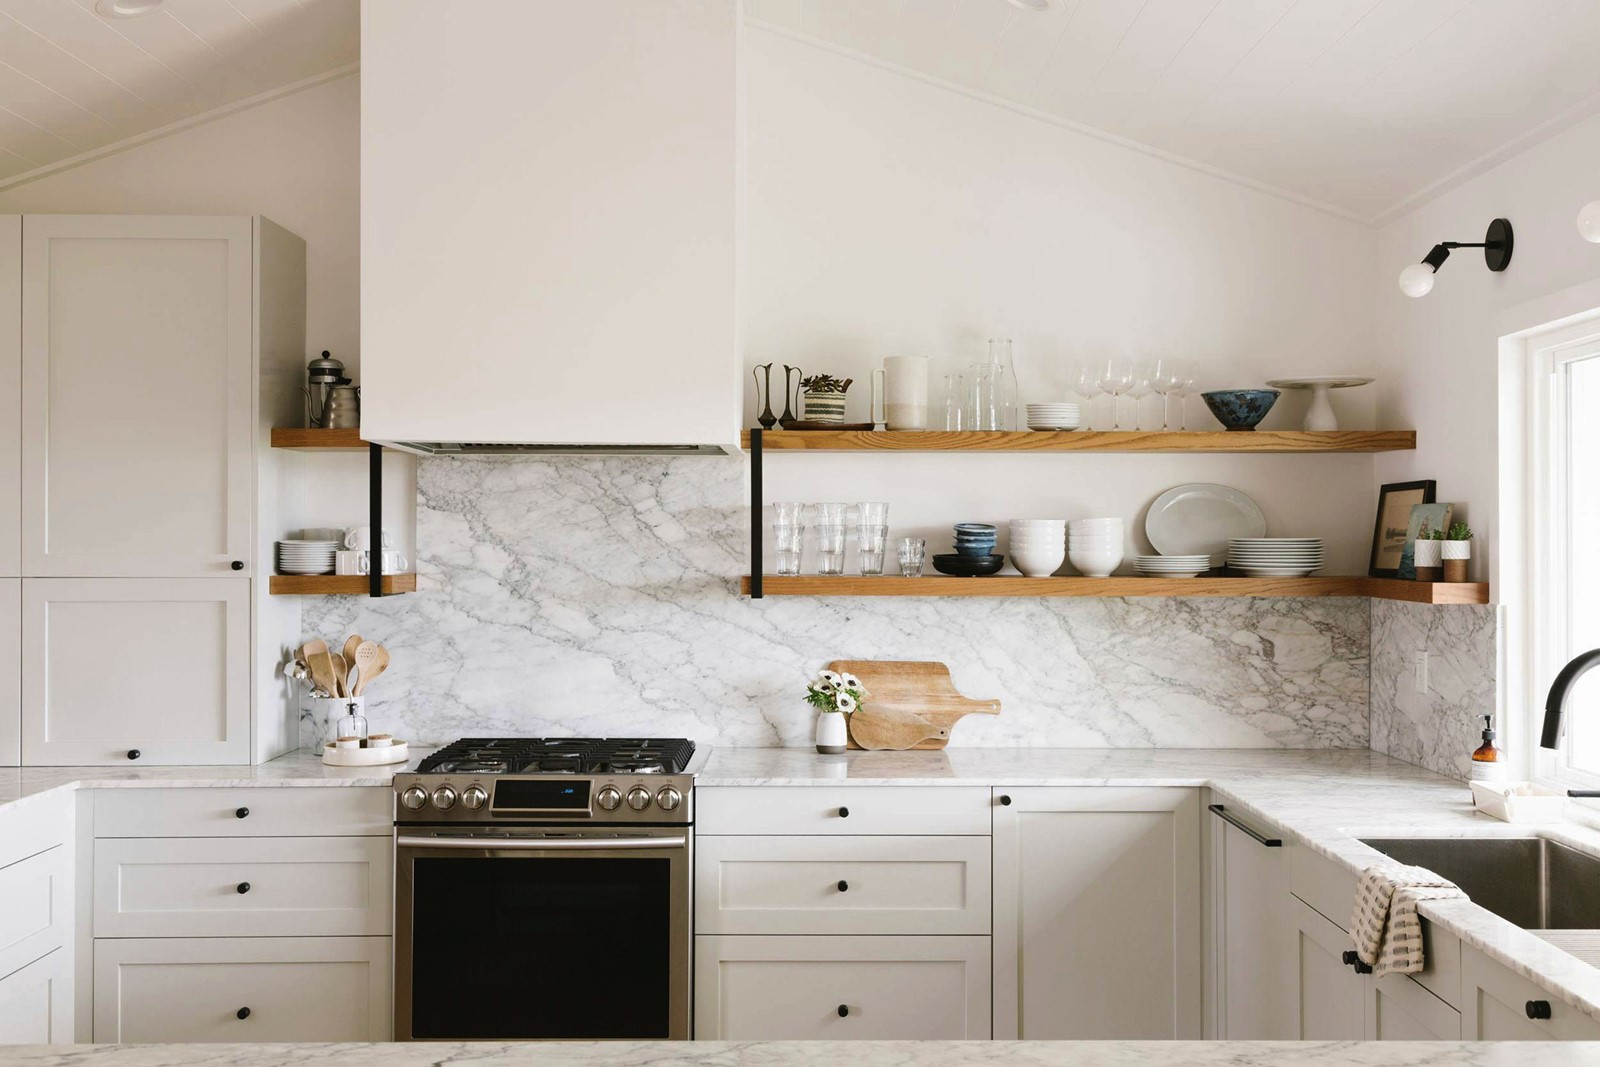 Semihandmade A Los Angeles Company Makes Cabinets Drawer Fronts And Accessories Specifically Designed To Fit Ikea Cabinet Bo